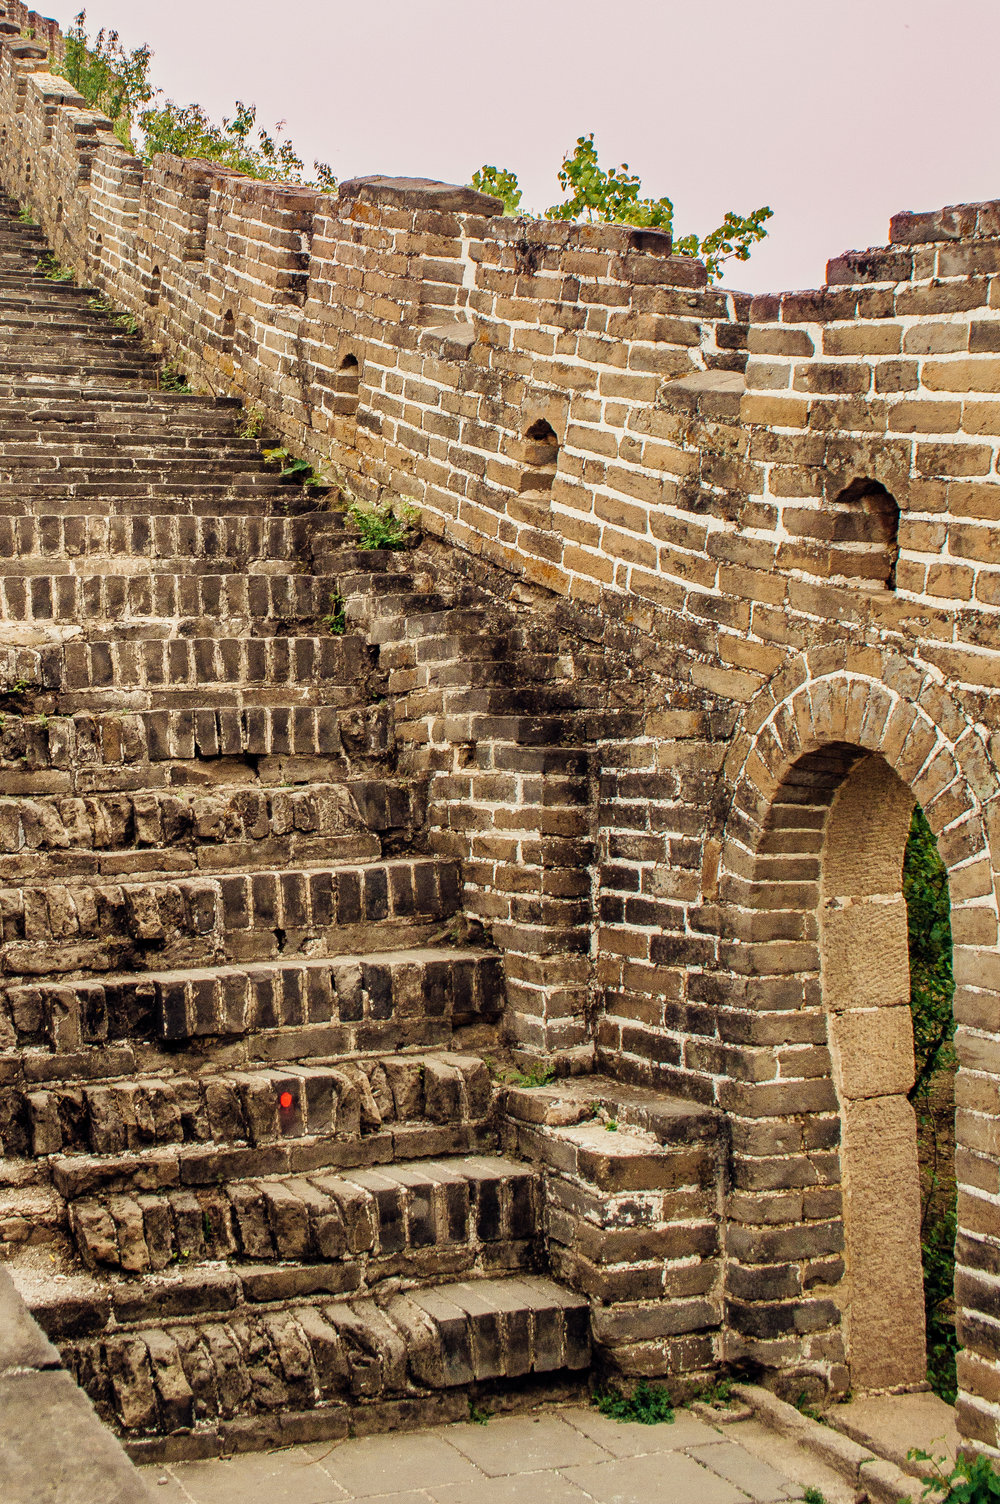 Although you probably can't tell, these crumbling steps are pretty much vertical. If you have a mobility issue, it may be best to look at the Mutianyu section with the cable car.